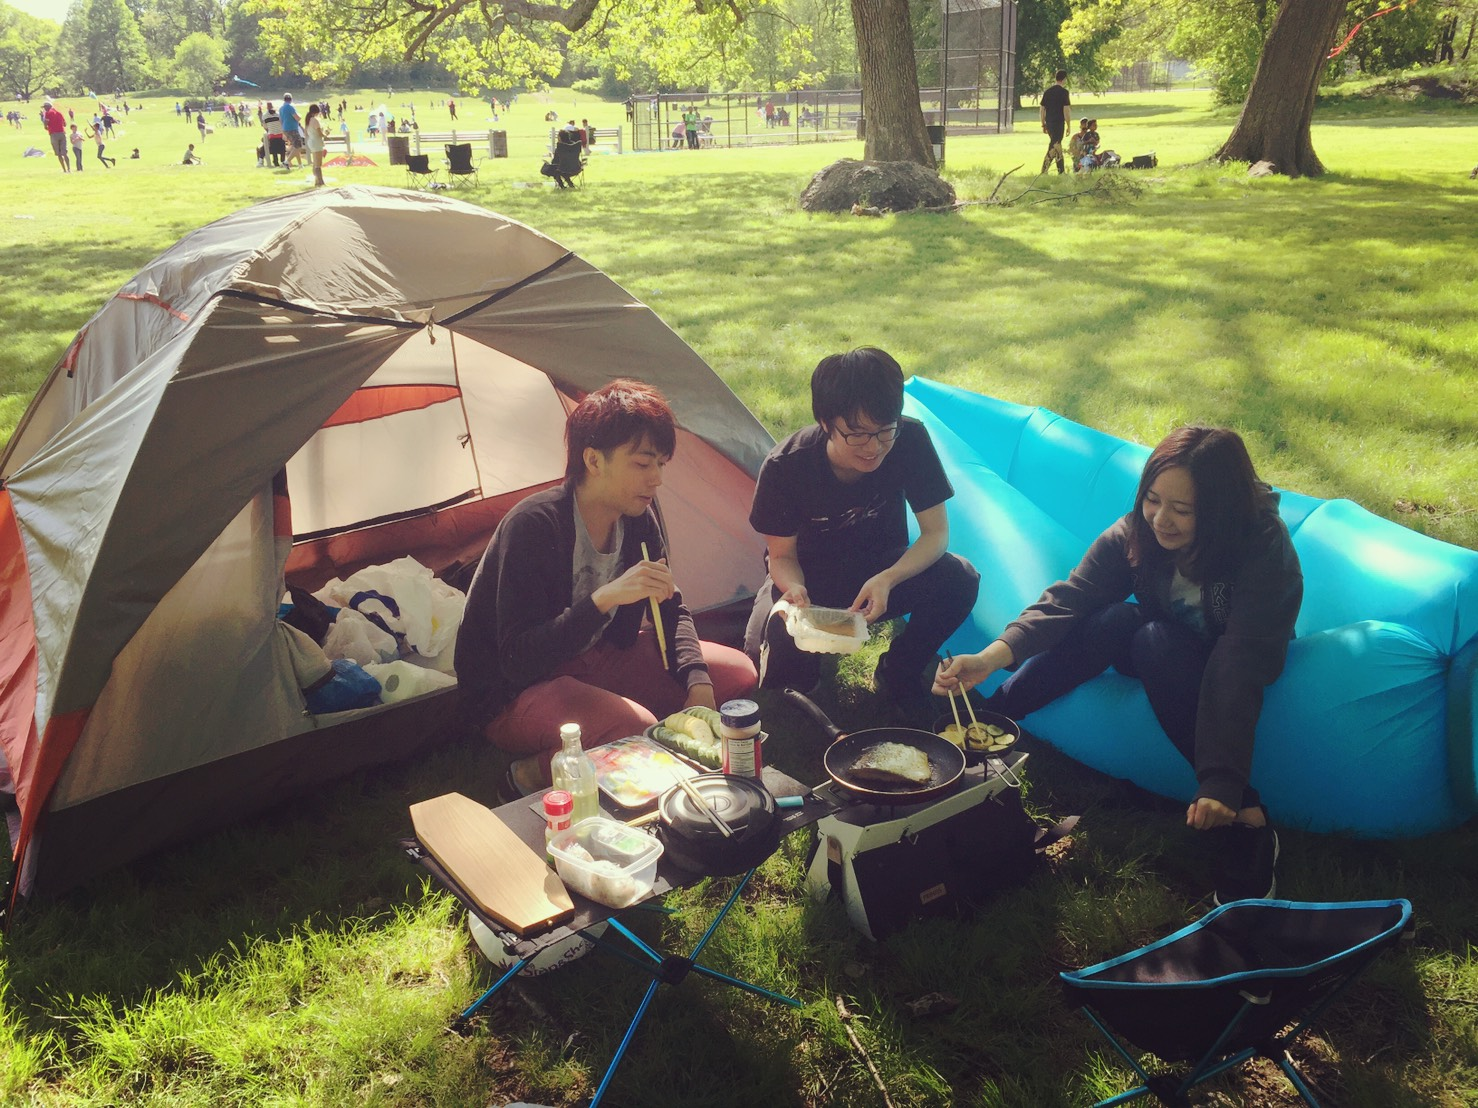 Picnick in the park